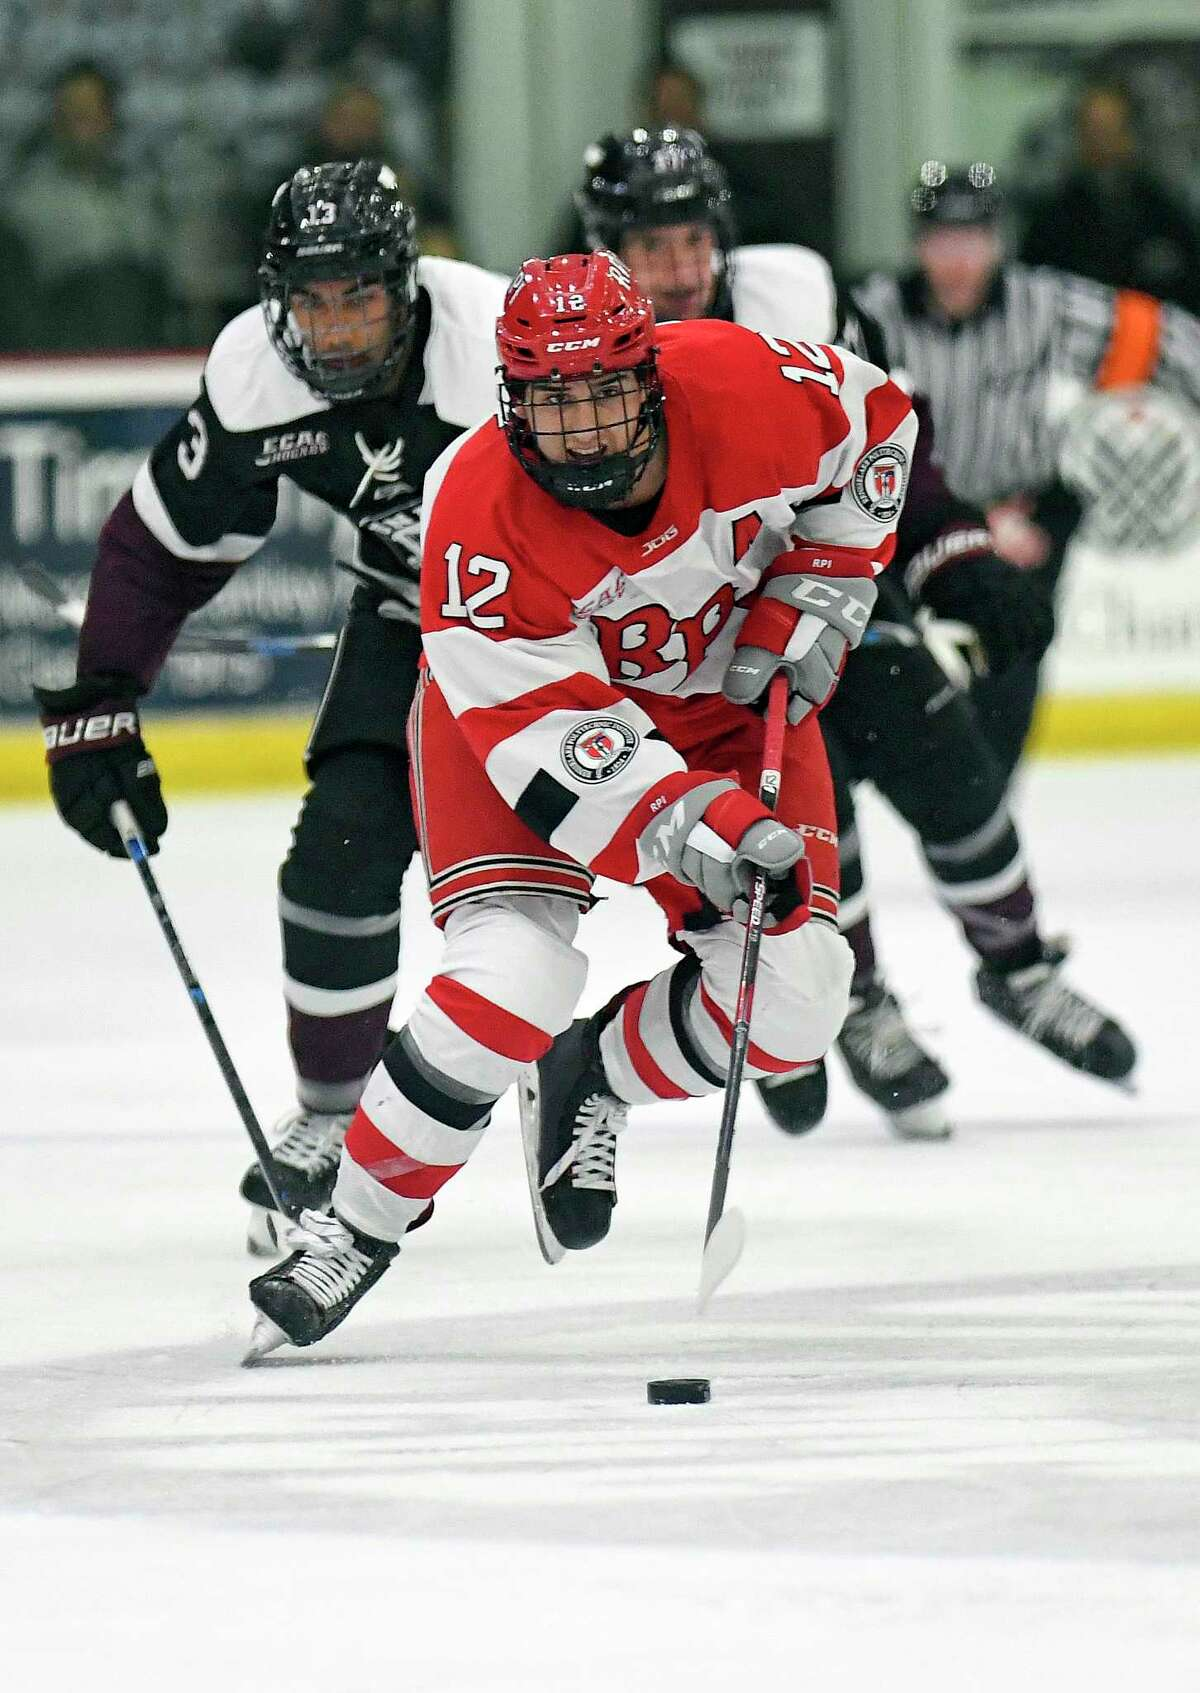 Rensselaer Polytechnic Institute forward Chase Zieky (12) moves the puck against Union during the second period of an NCAA hockey game Friday Oct. 25, 2019, in Schenectady, N.Y. (Hans Pennink / Special to the Times Union)